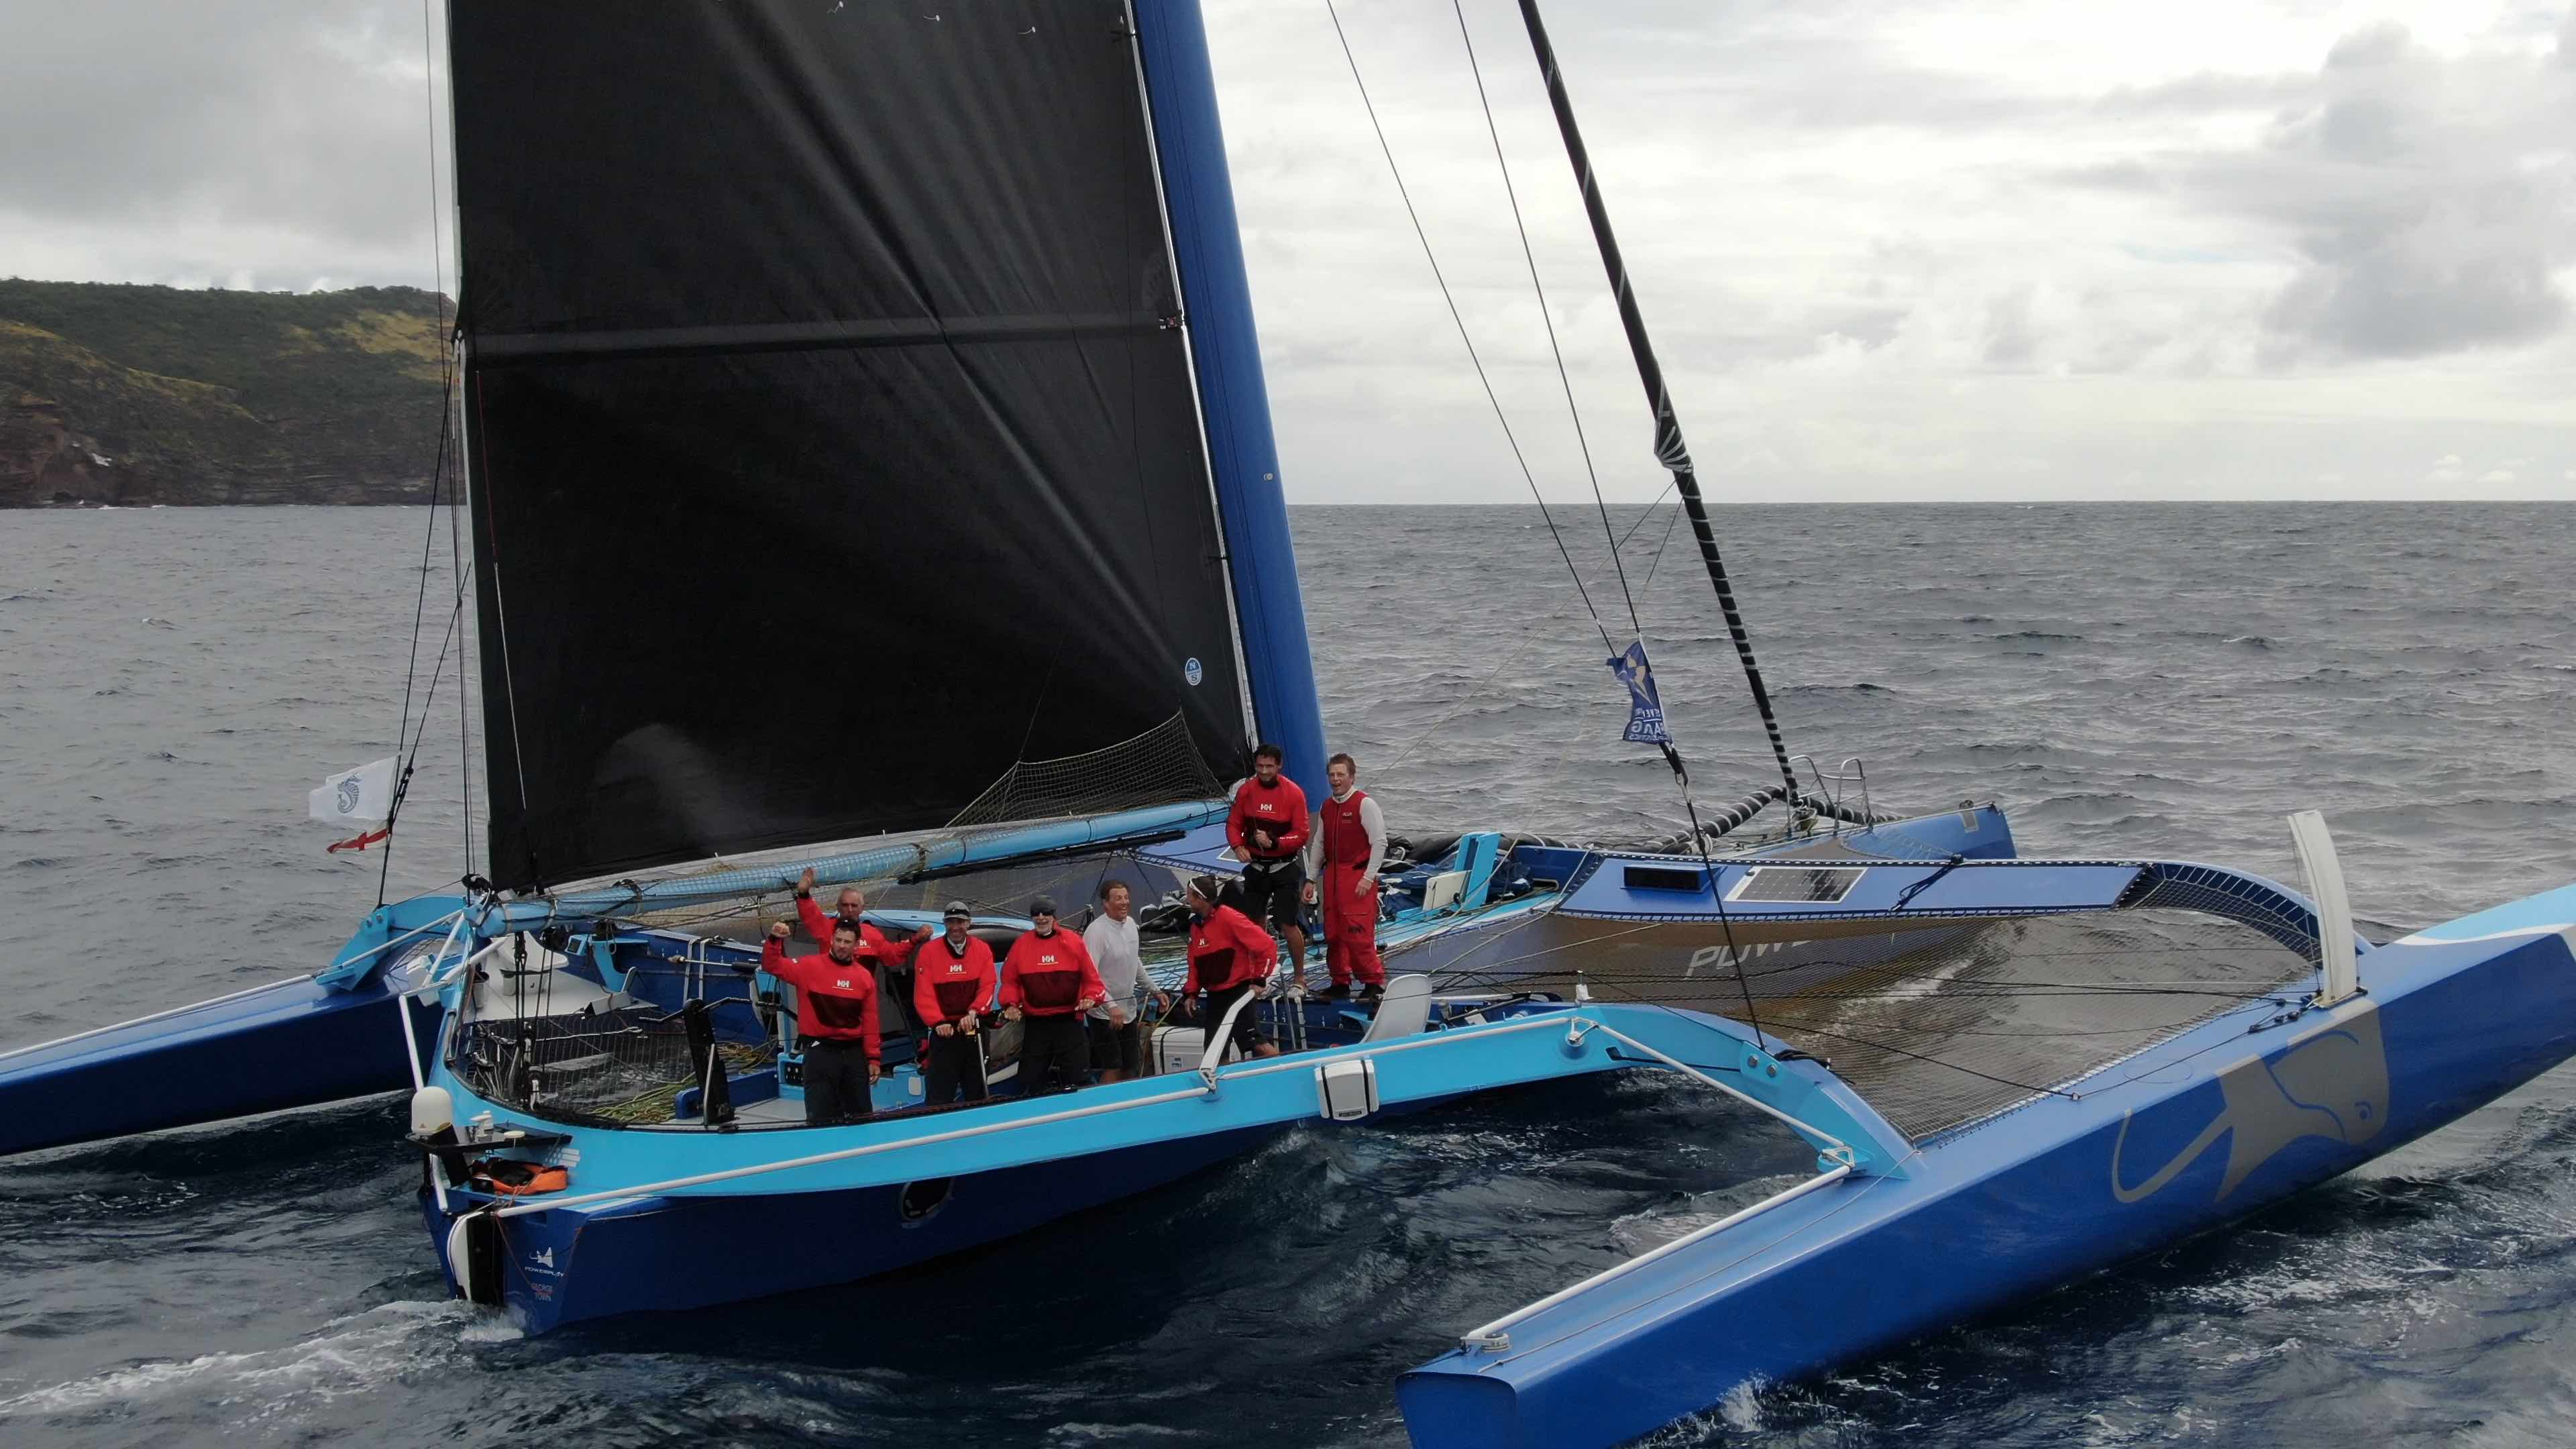 Peter Cunningham's MOD70 arrives in Antigua and the team celebrate their close victory in the MOCRA class after completing the course in 1 day 21 hrs 51 mins 34 secs © RORC